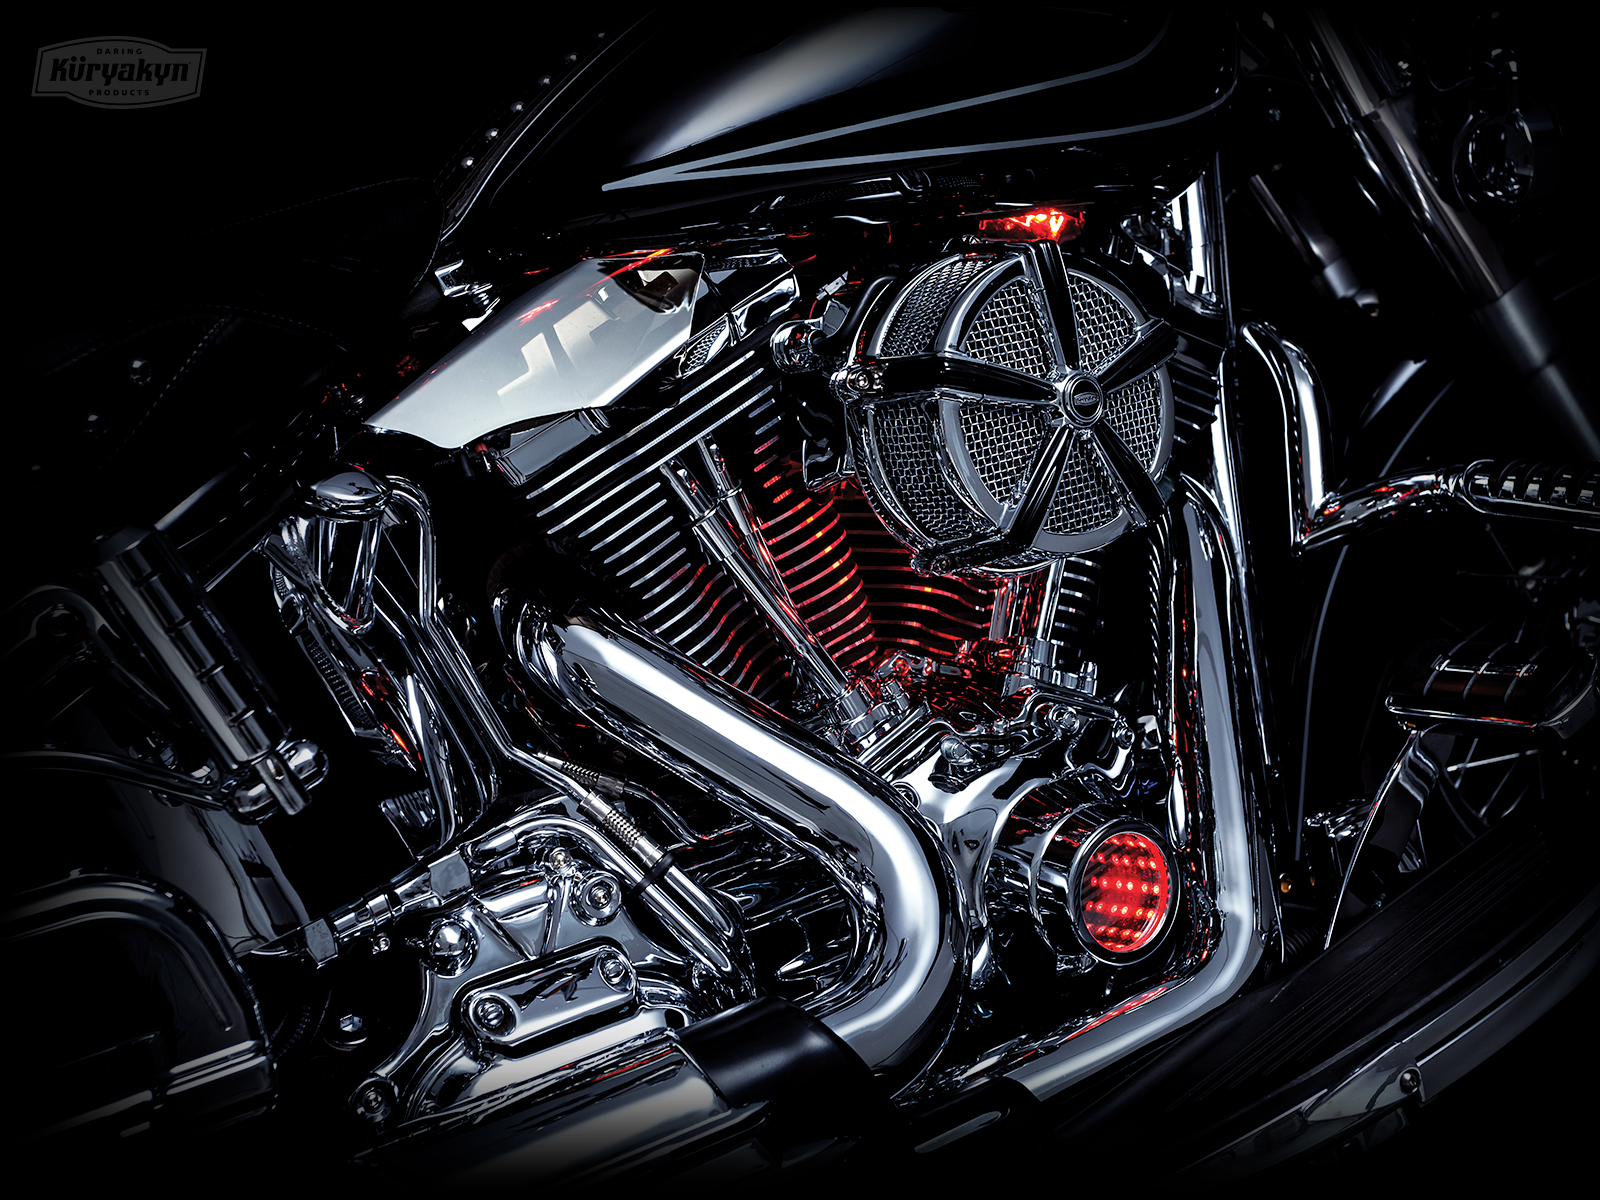 Wallpapers | Motorcycle Parts and Accessories for Harley, Metric ...